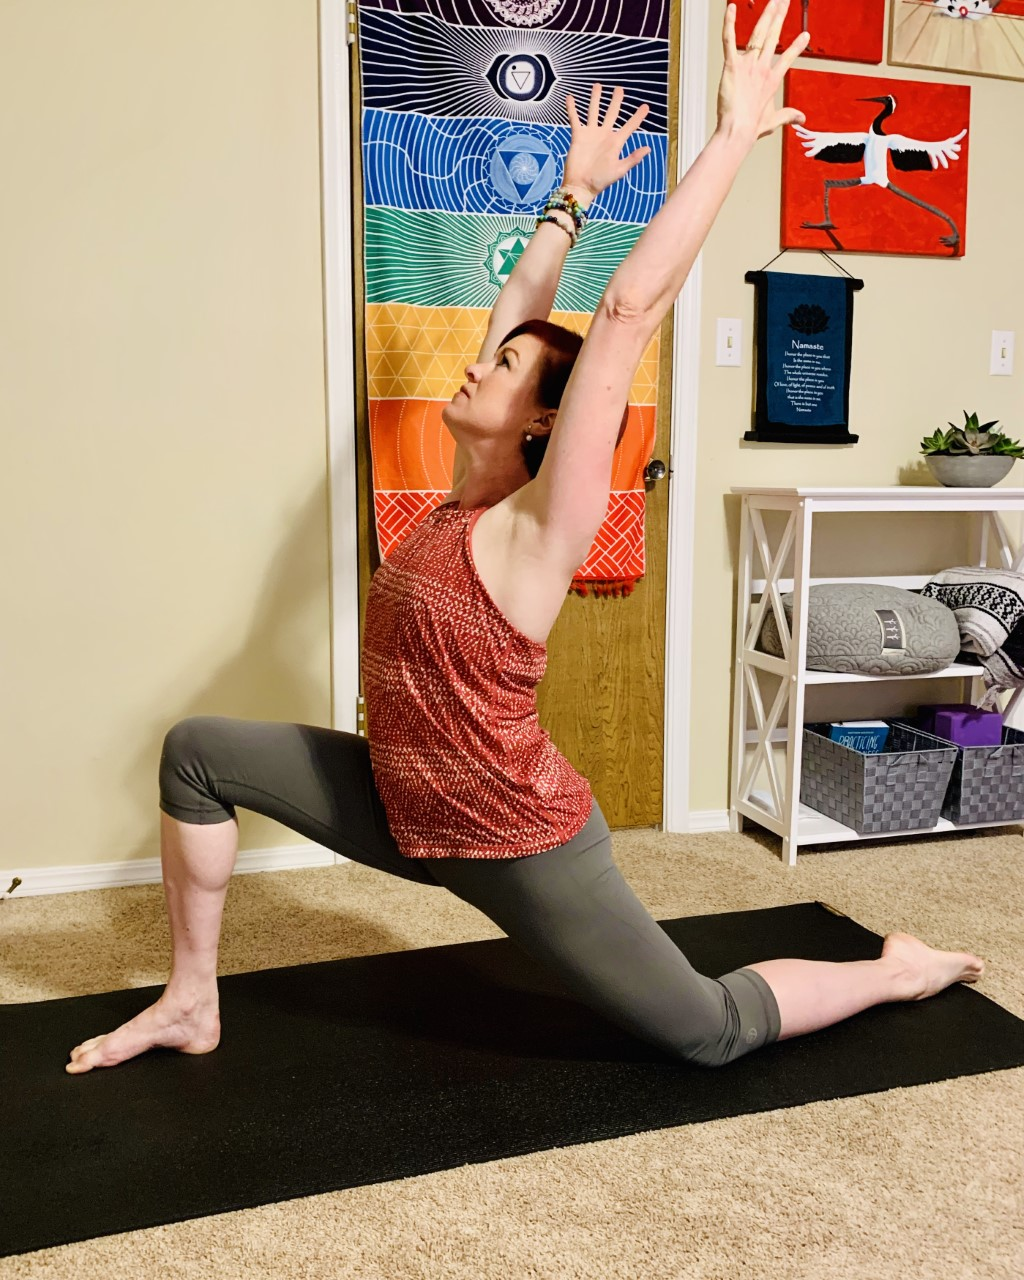 Yoga Poses to Ease Back Pain